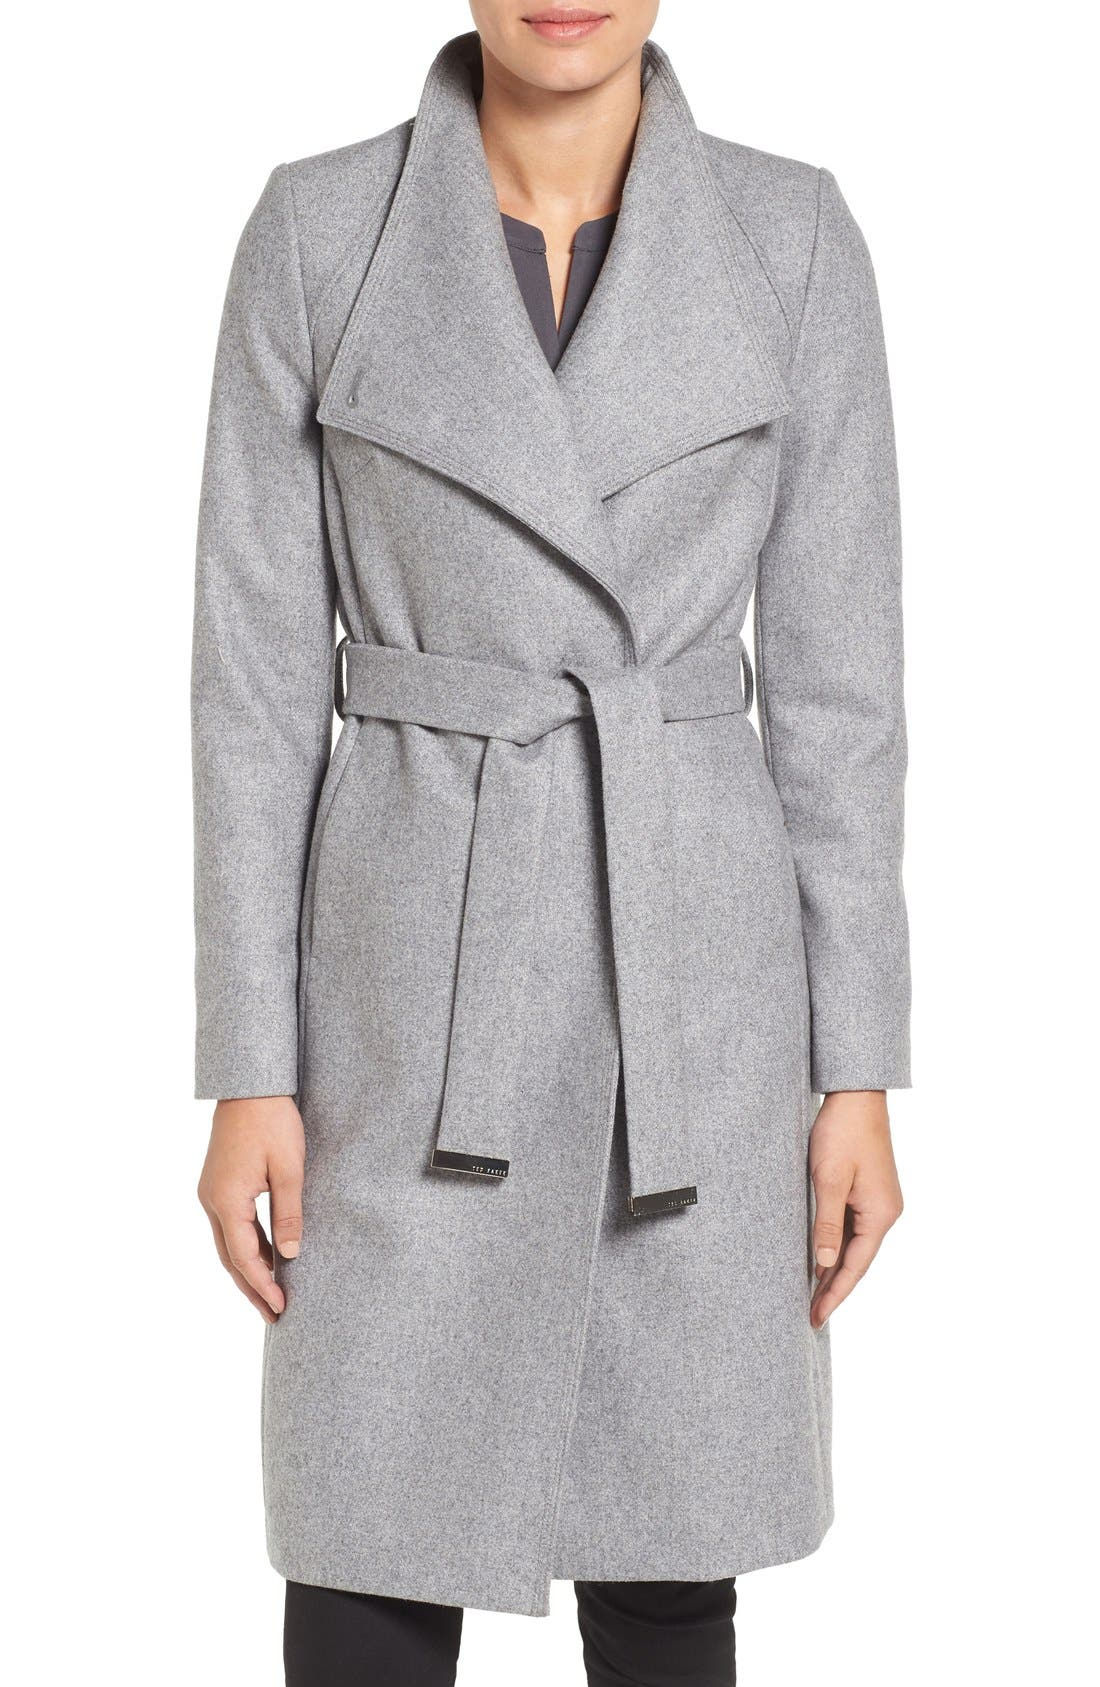 Alternate Image 1 Selected - Ted Baker London Wrap Coat